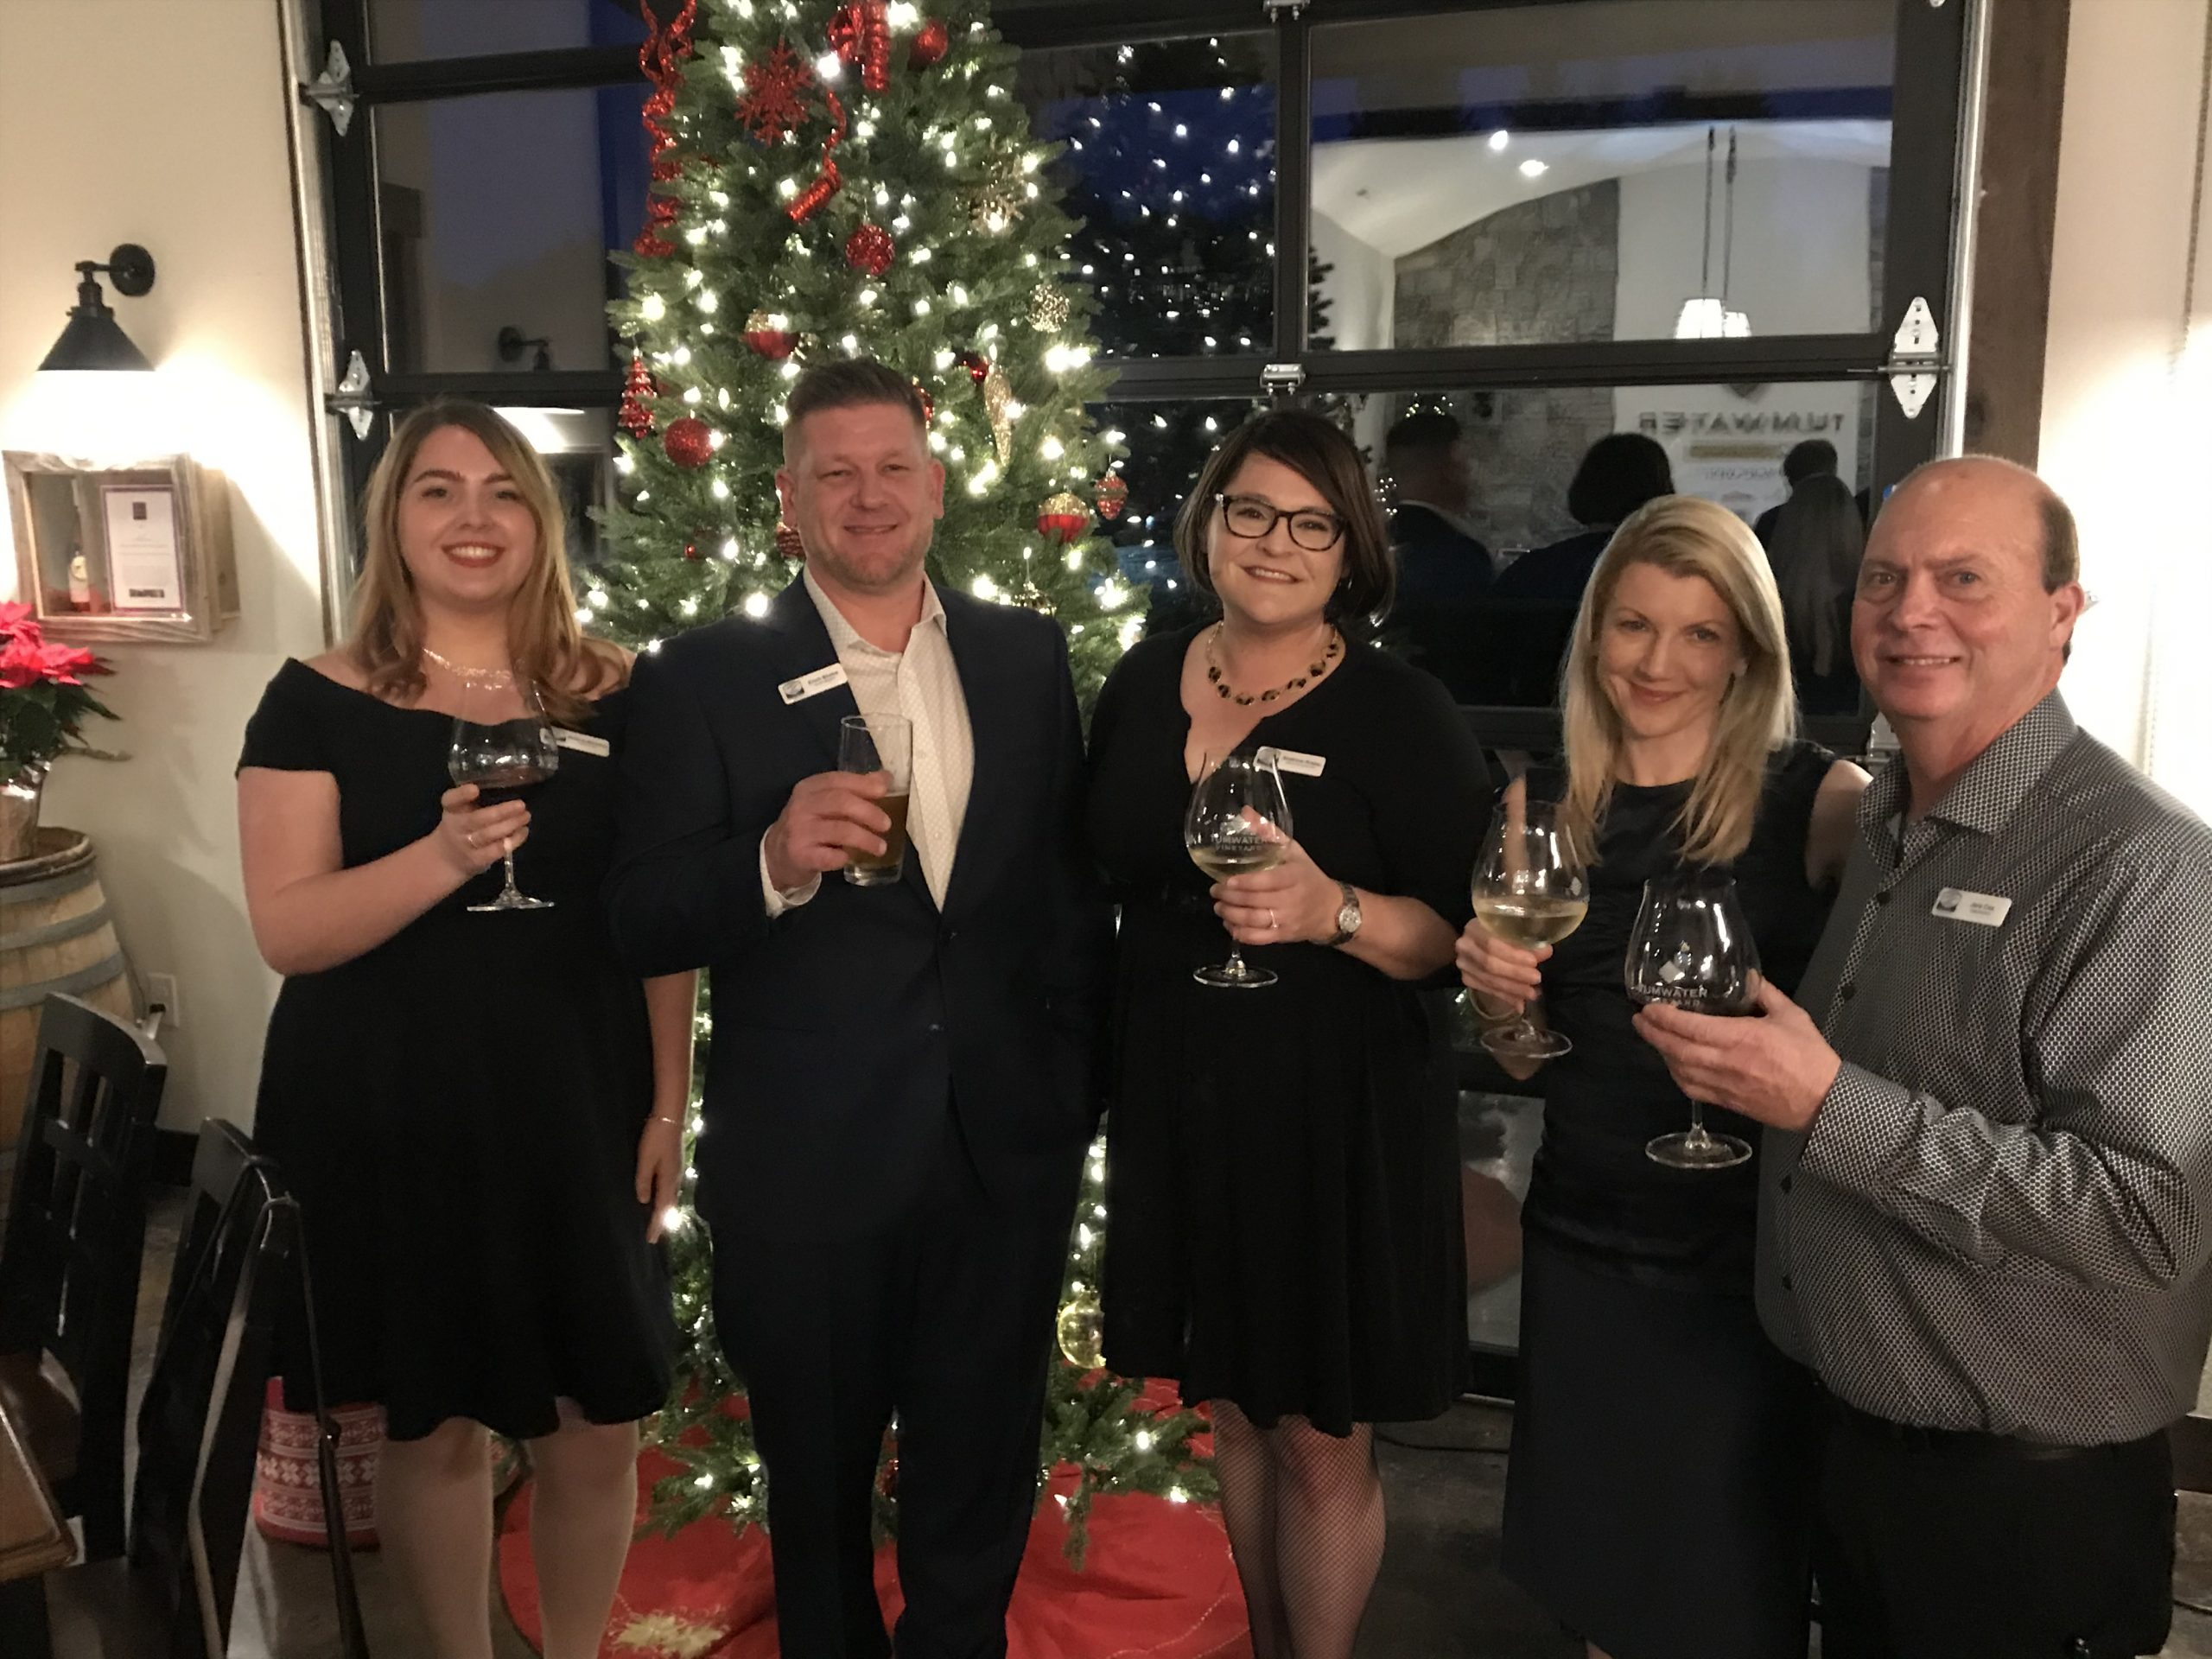 Cheers to 2020 from the West Linn Chamber Board & Ambassadors!